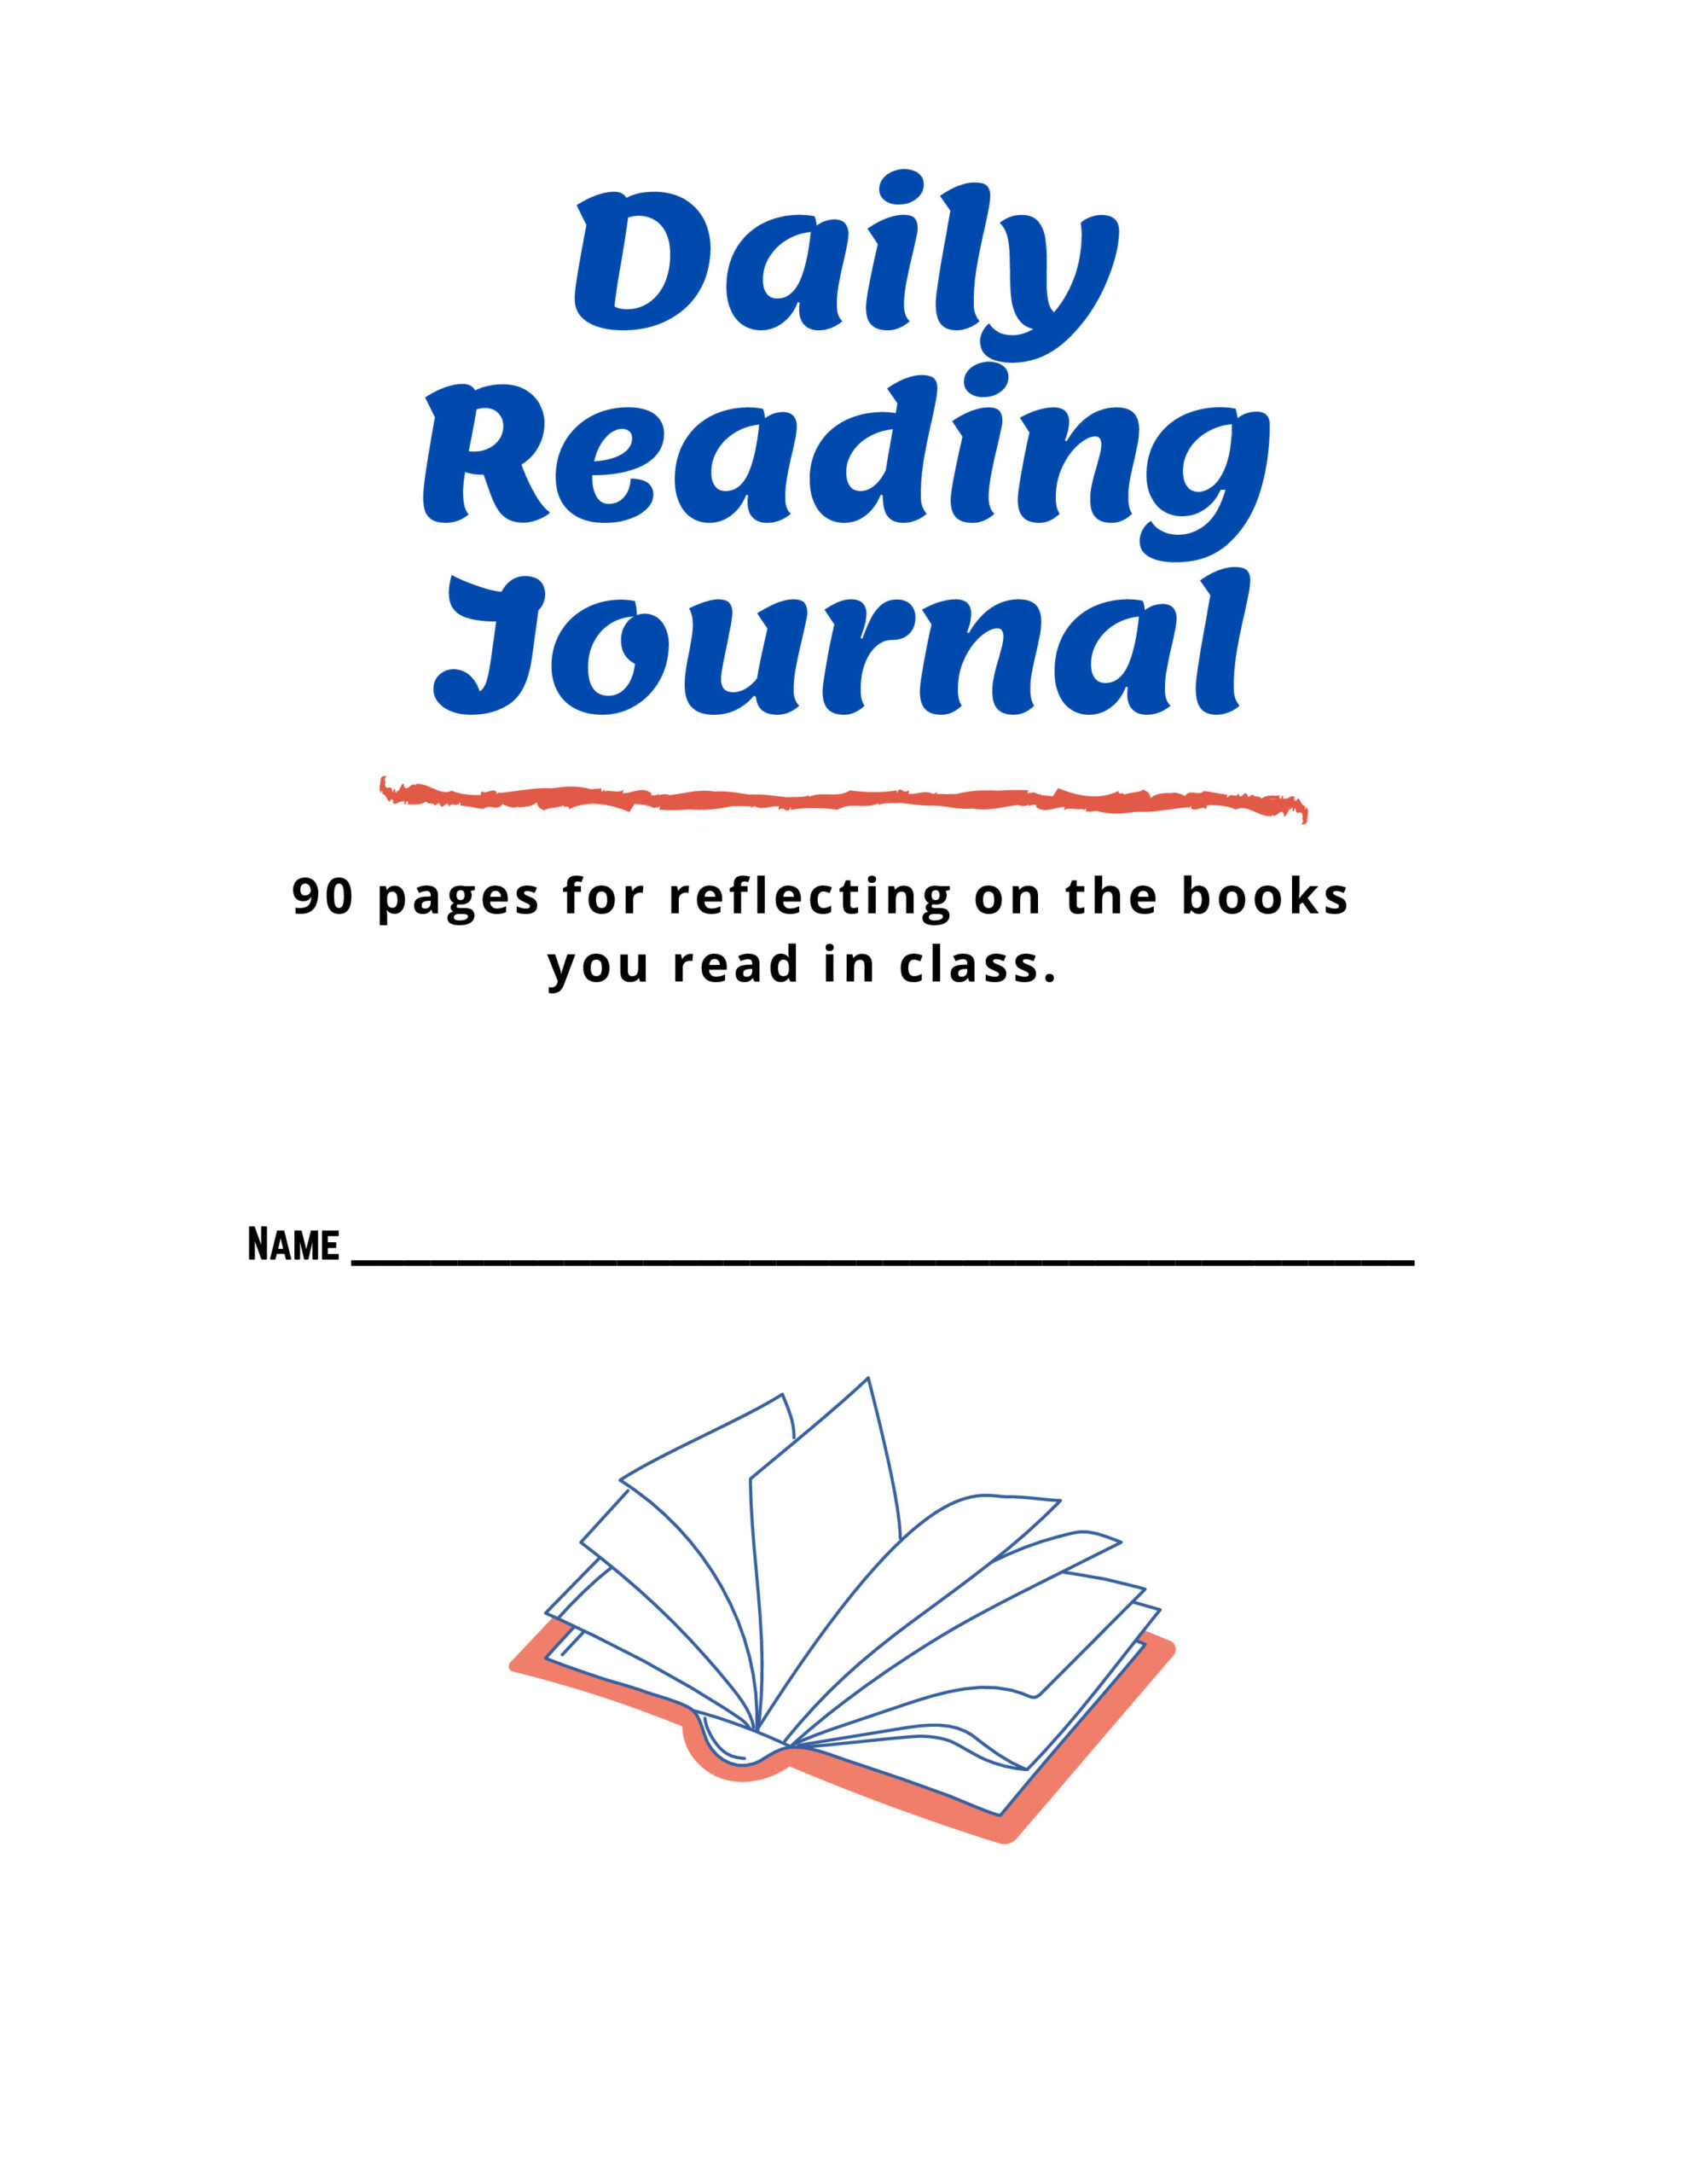 Daily Reading Journal Booklet (90+ pages)